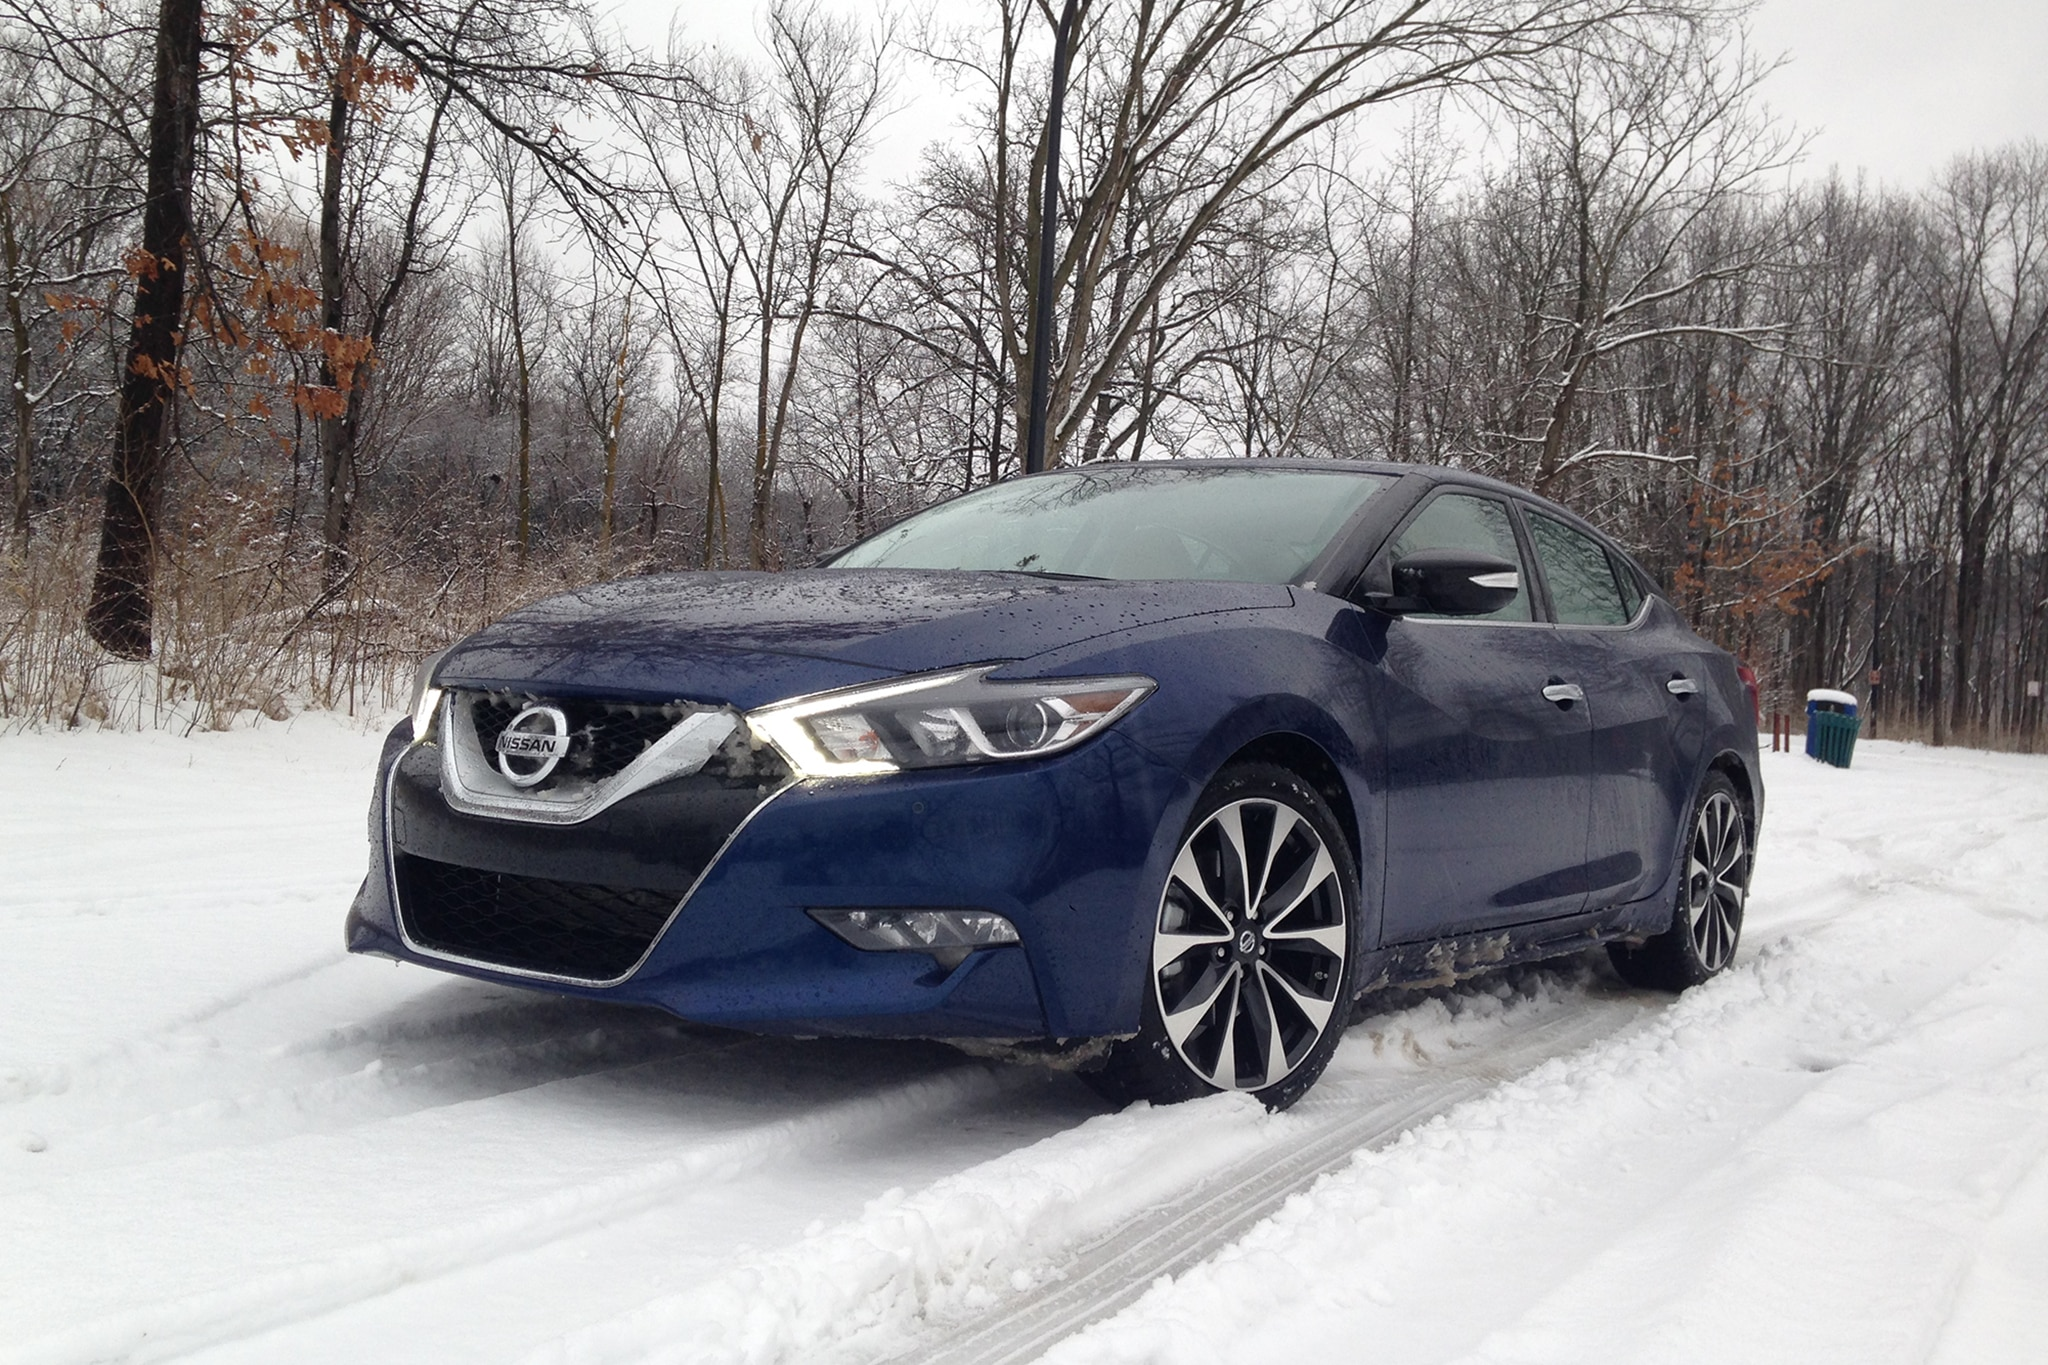 2016 nissan maxima sr a boulevard cruiser that eats up miles. Black Bedroom Furniture Sets. Home Design Ideas